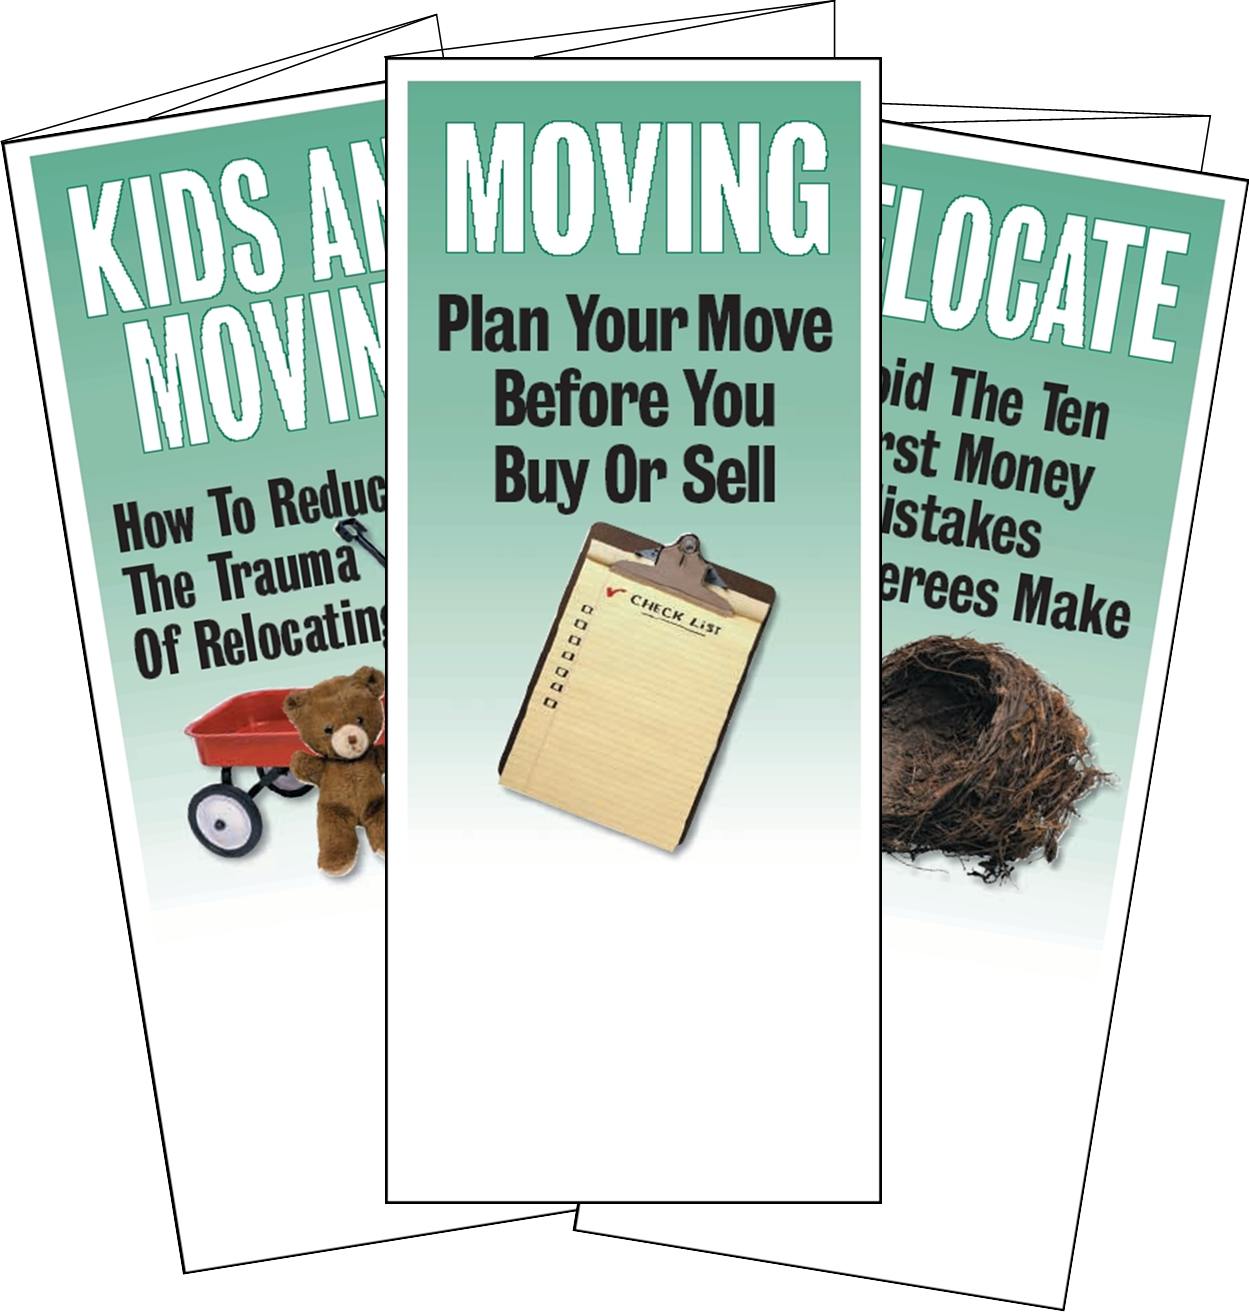 Planning Your Move Before You Sell